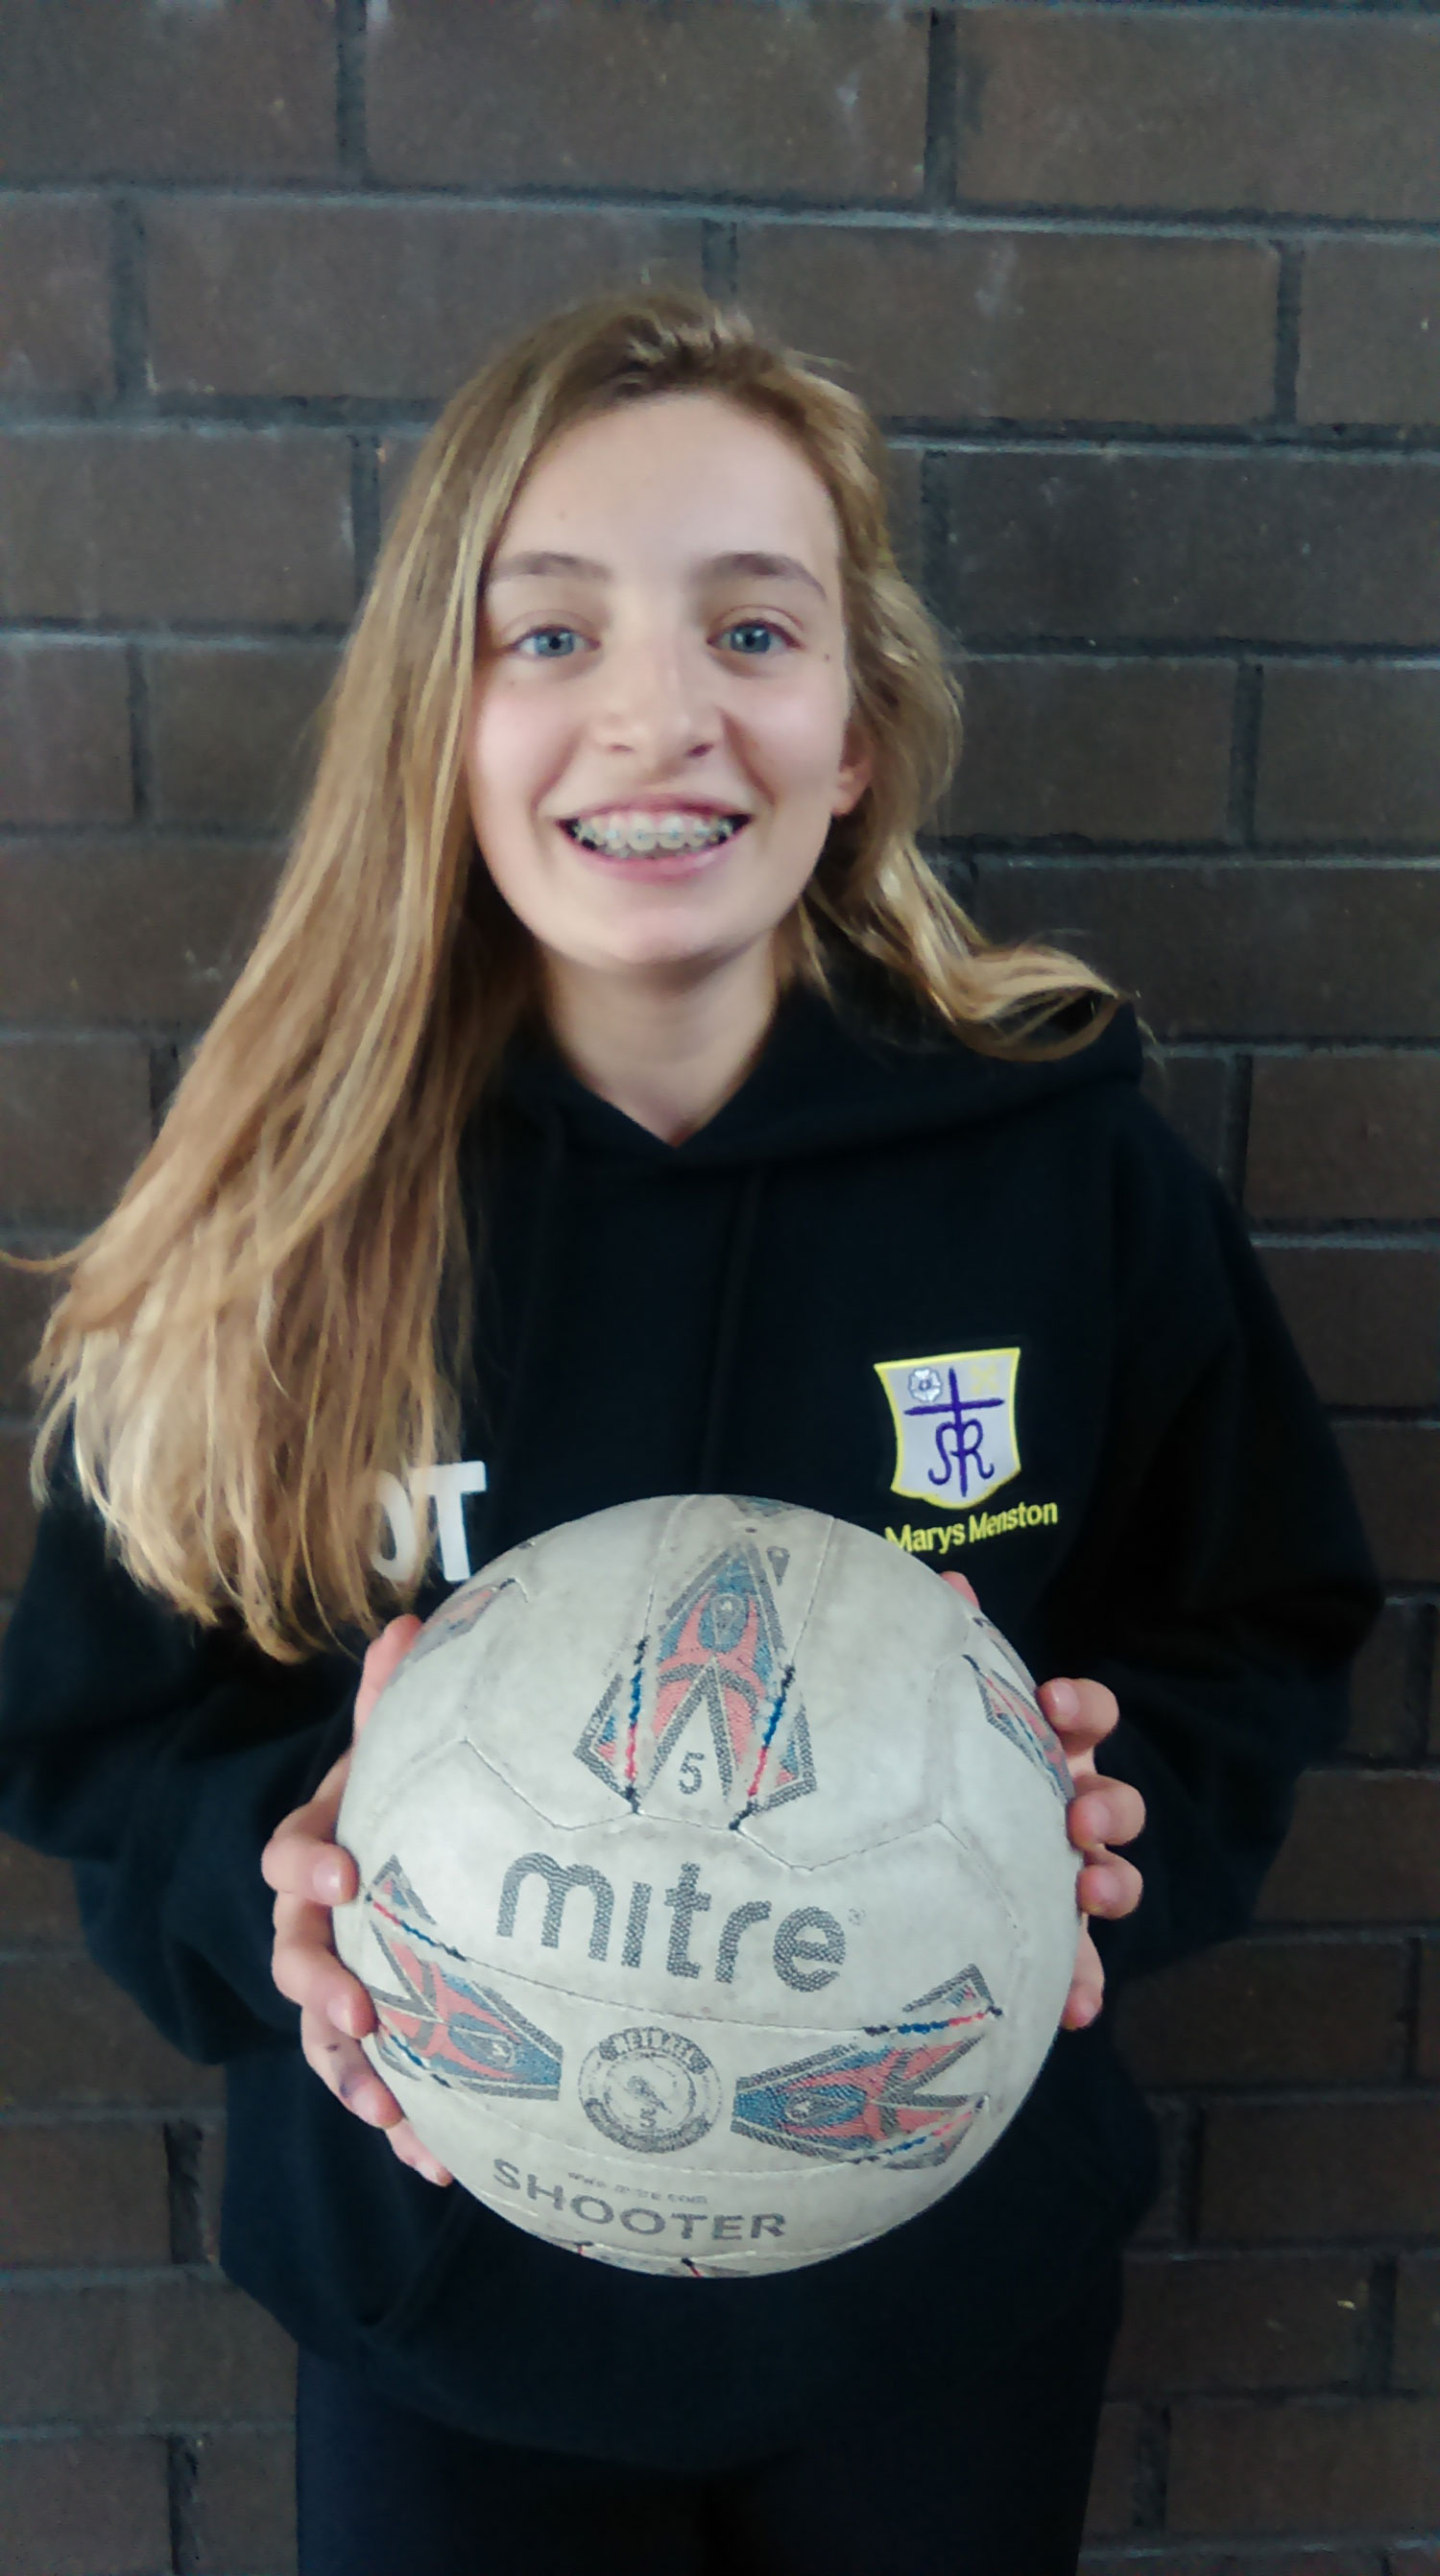 Photo: Well done again to Orla for another netball achievement!